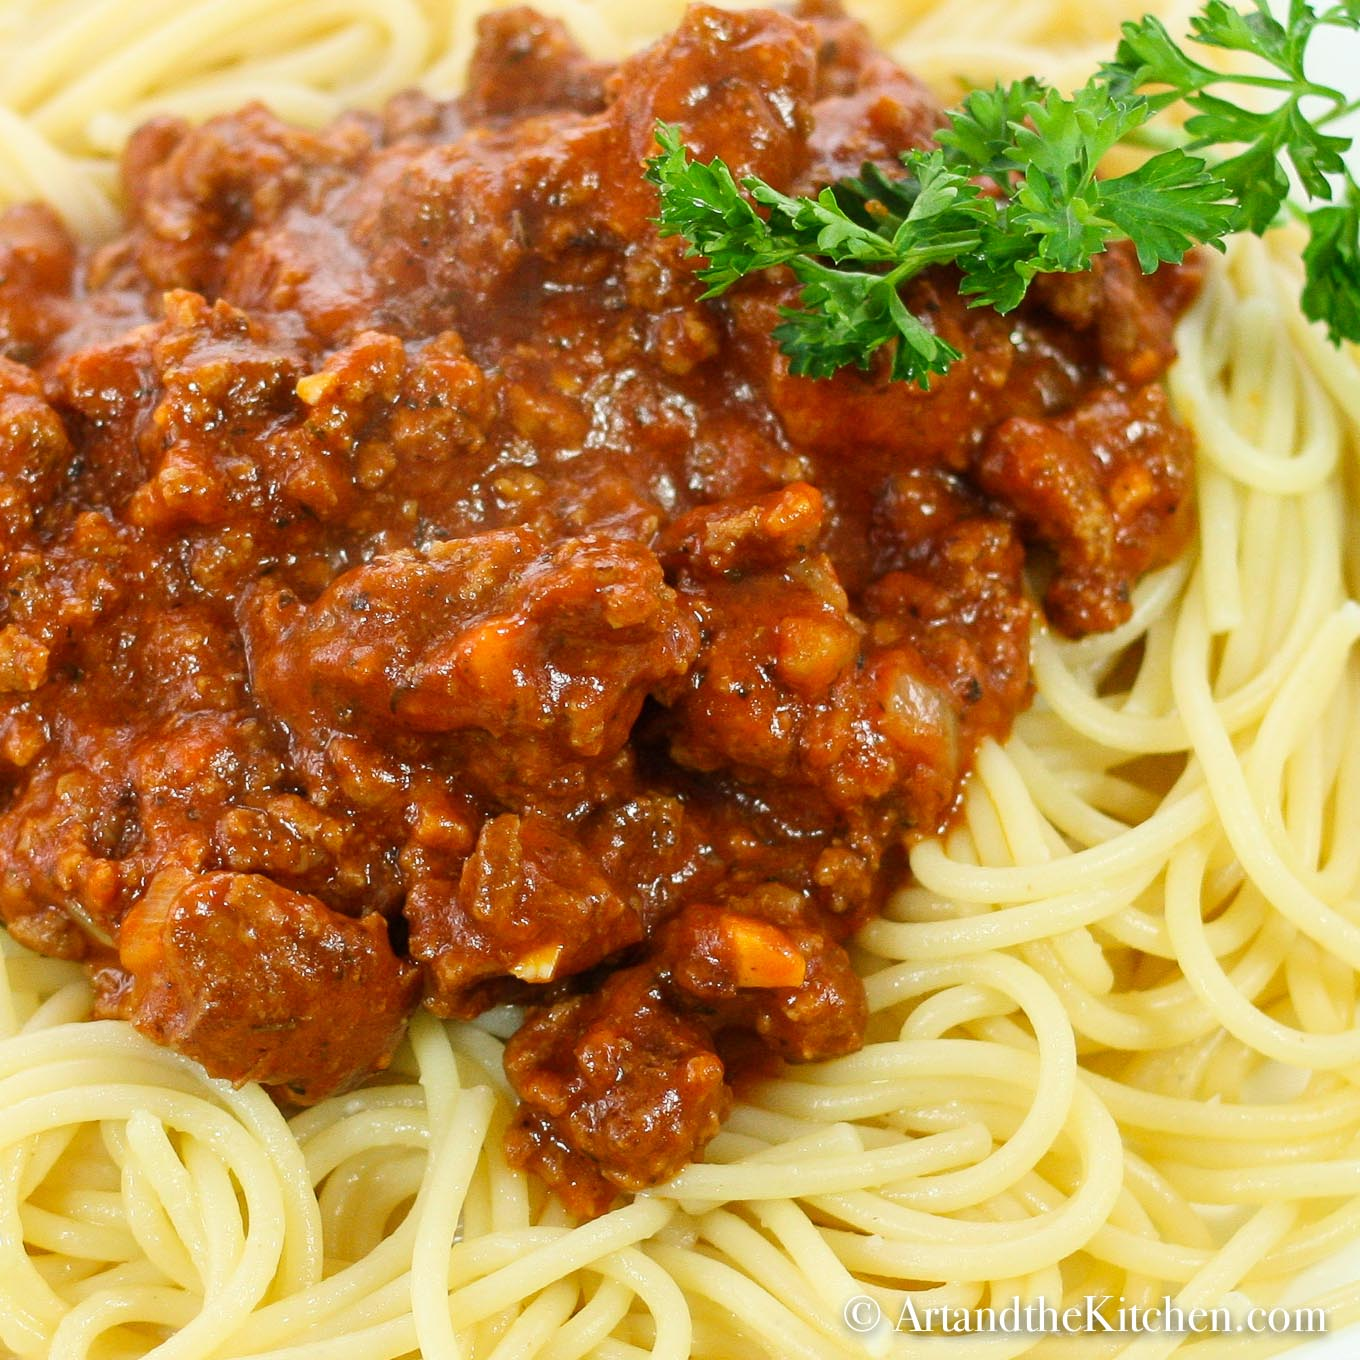 spaghetti pasta topped with a thick meat sauce